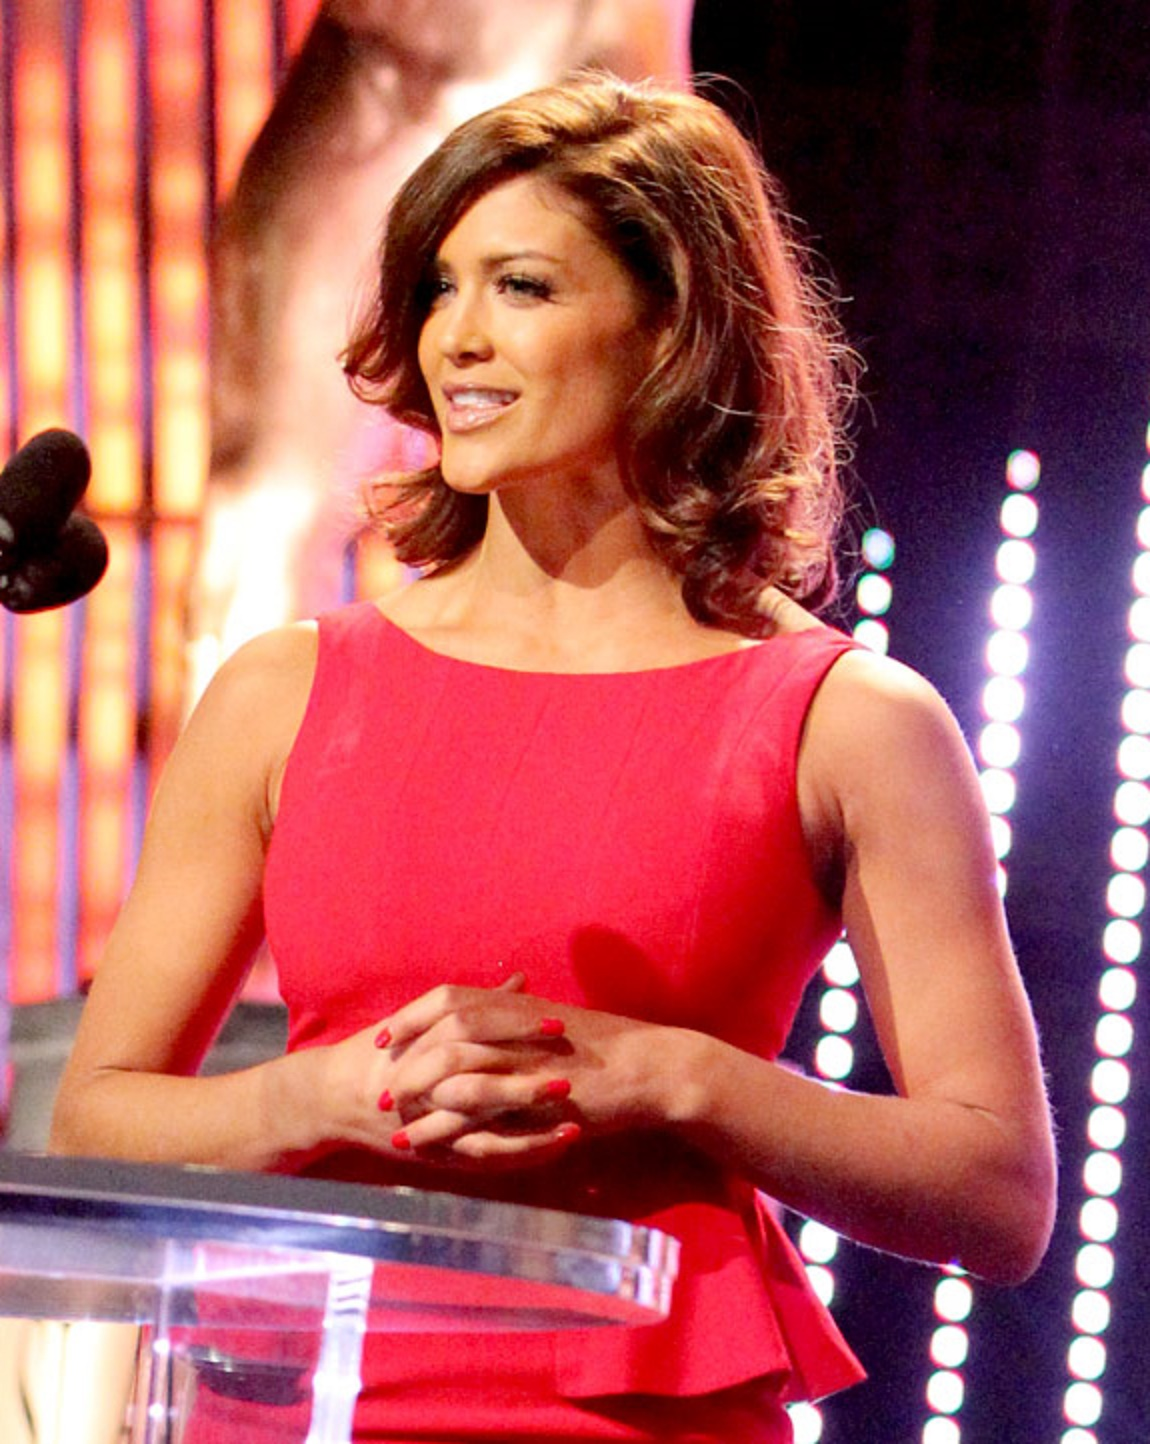 DCTV: former WWE Diva Eve Torres to play Maxima on 'Supergirl'